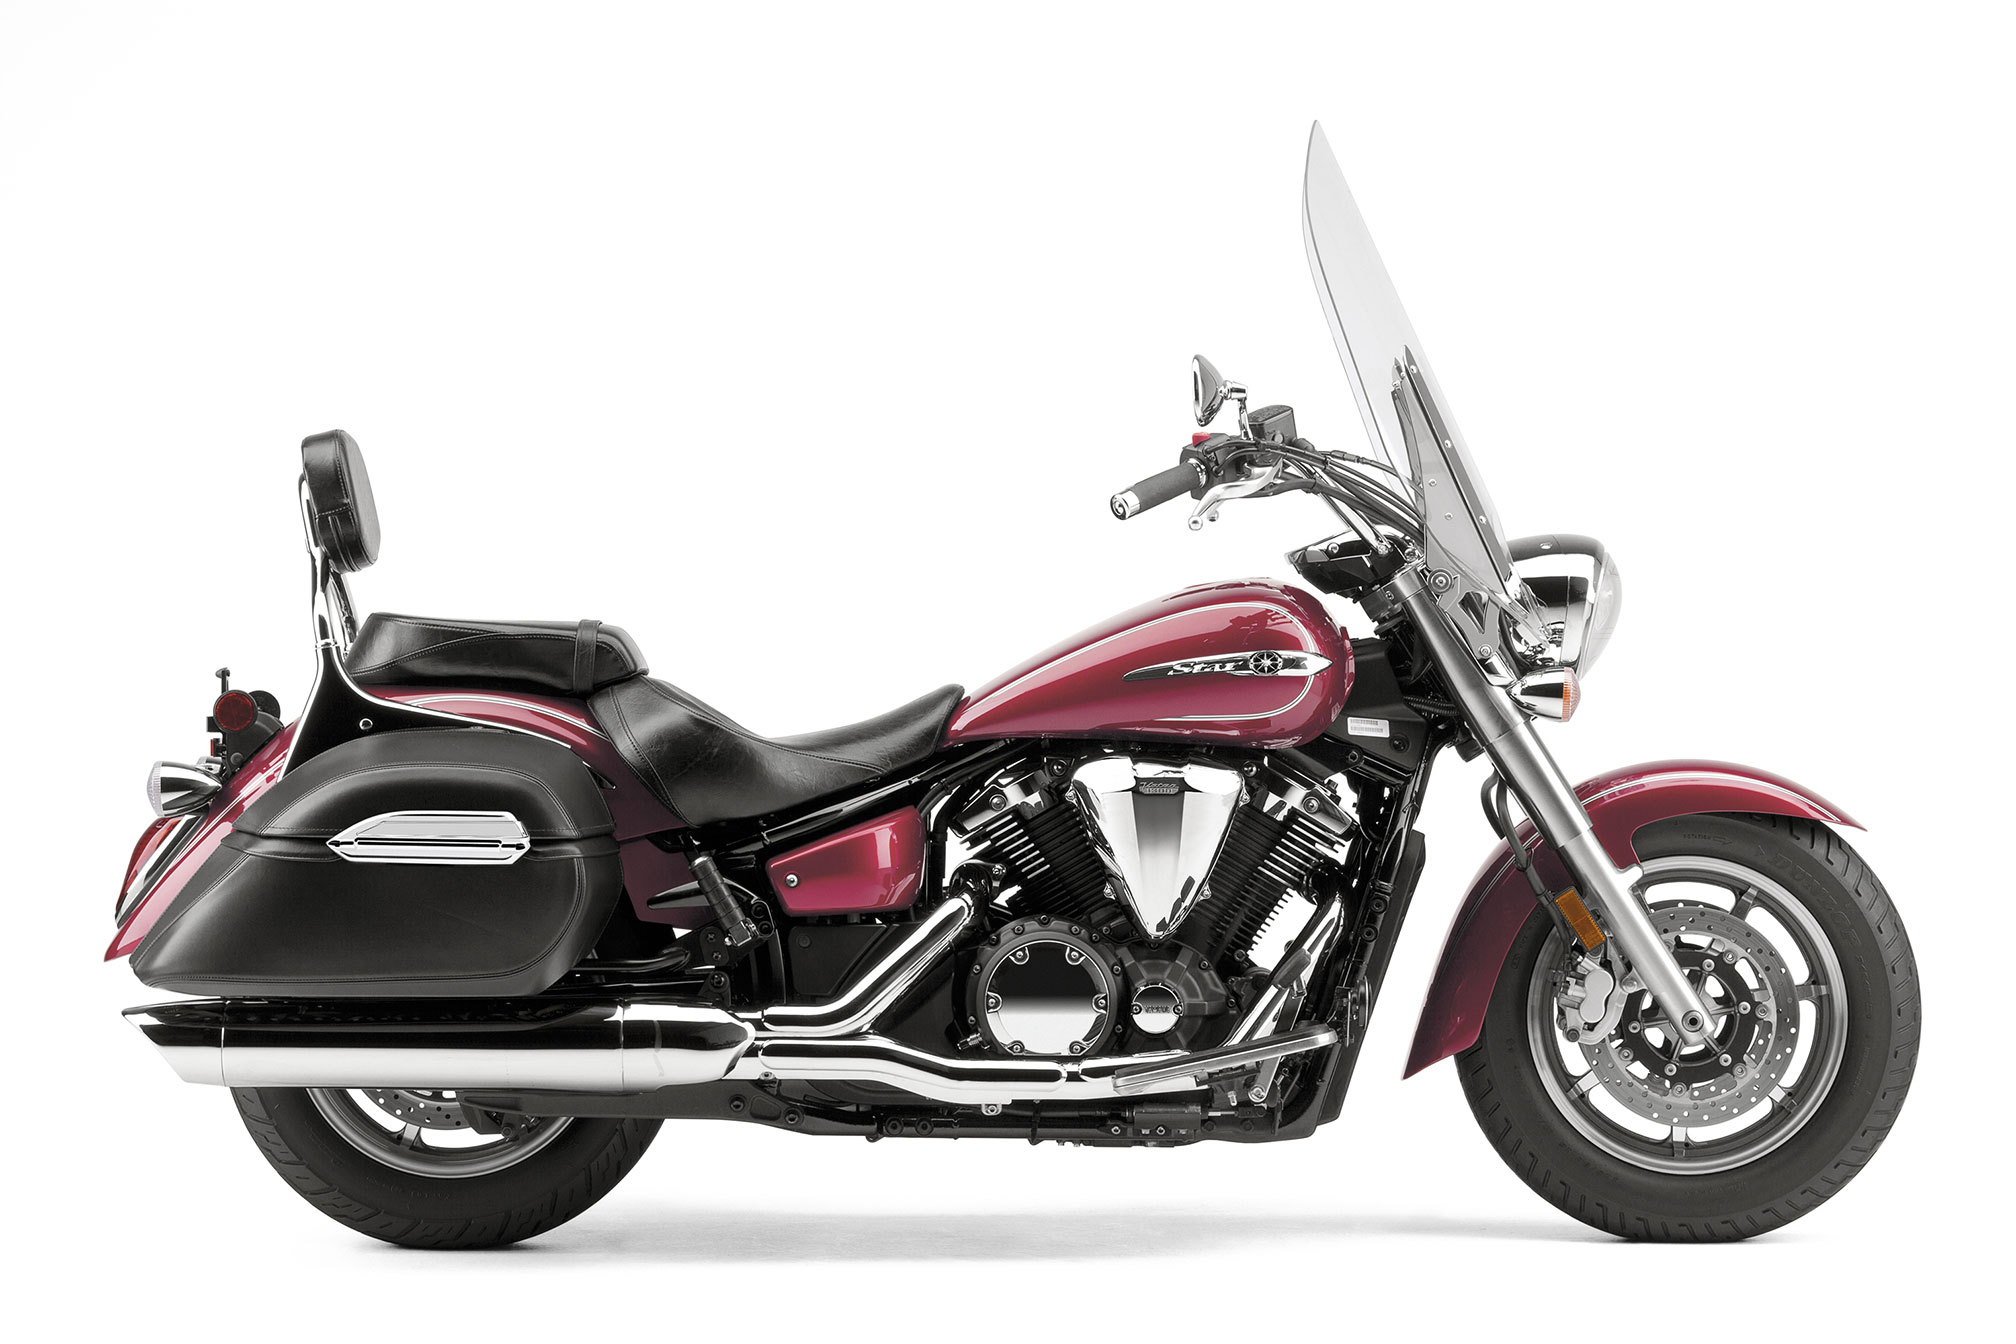 2016 yamaha v star 1300 tourer review for Yamaha motorcycle store near me